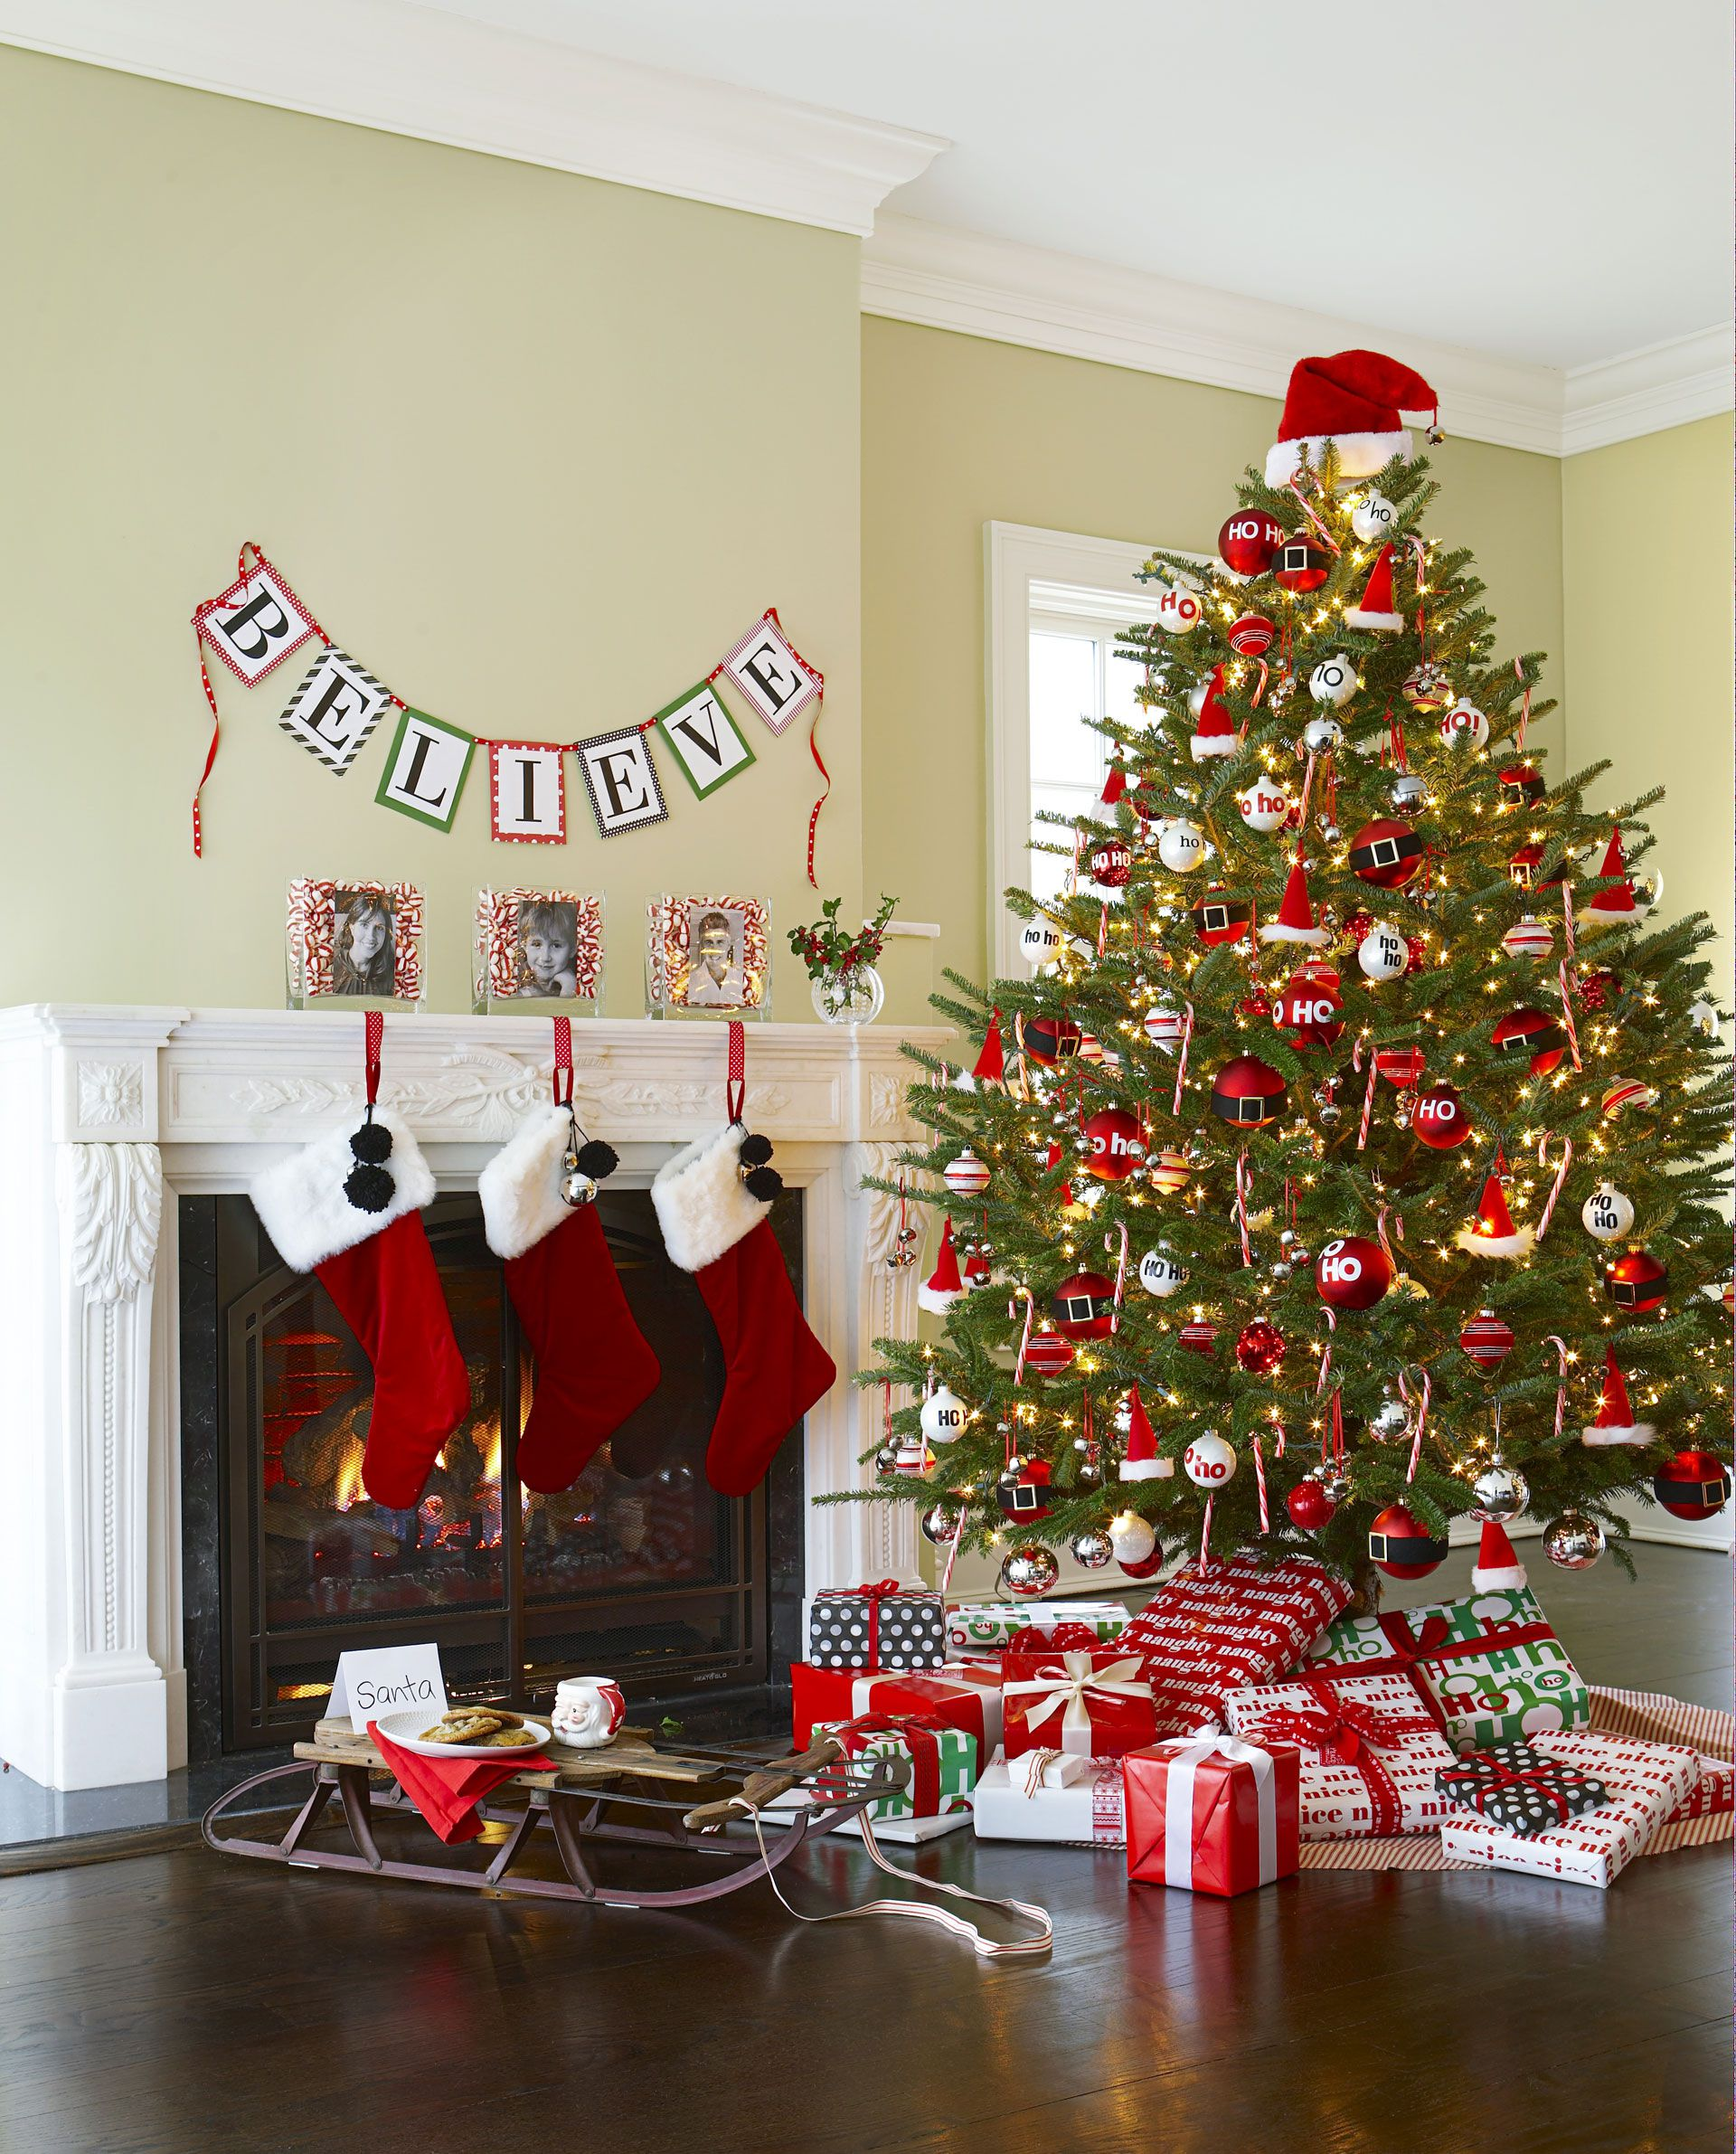 Decorate Christmas tree christmas tree red decorations AYOOWFX